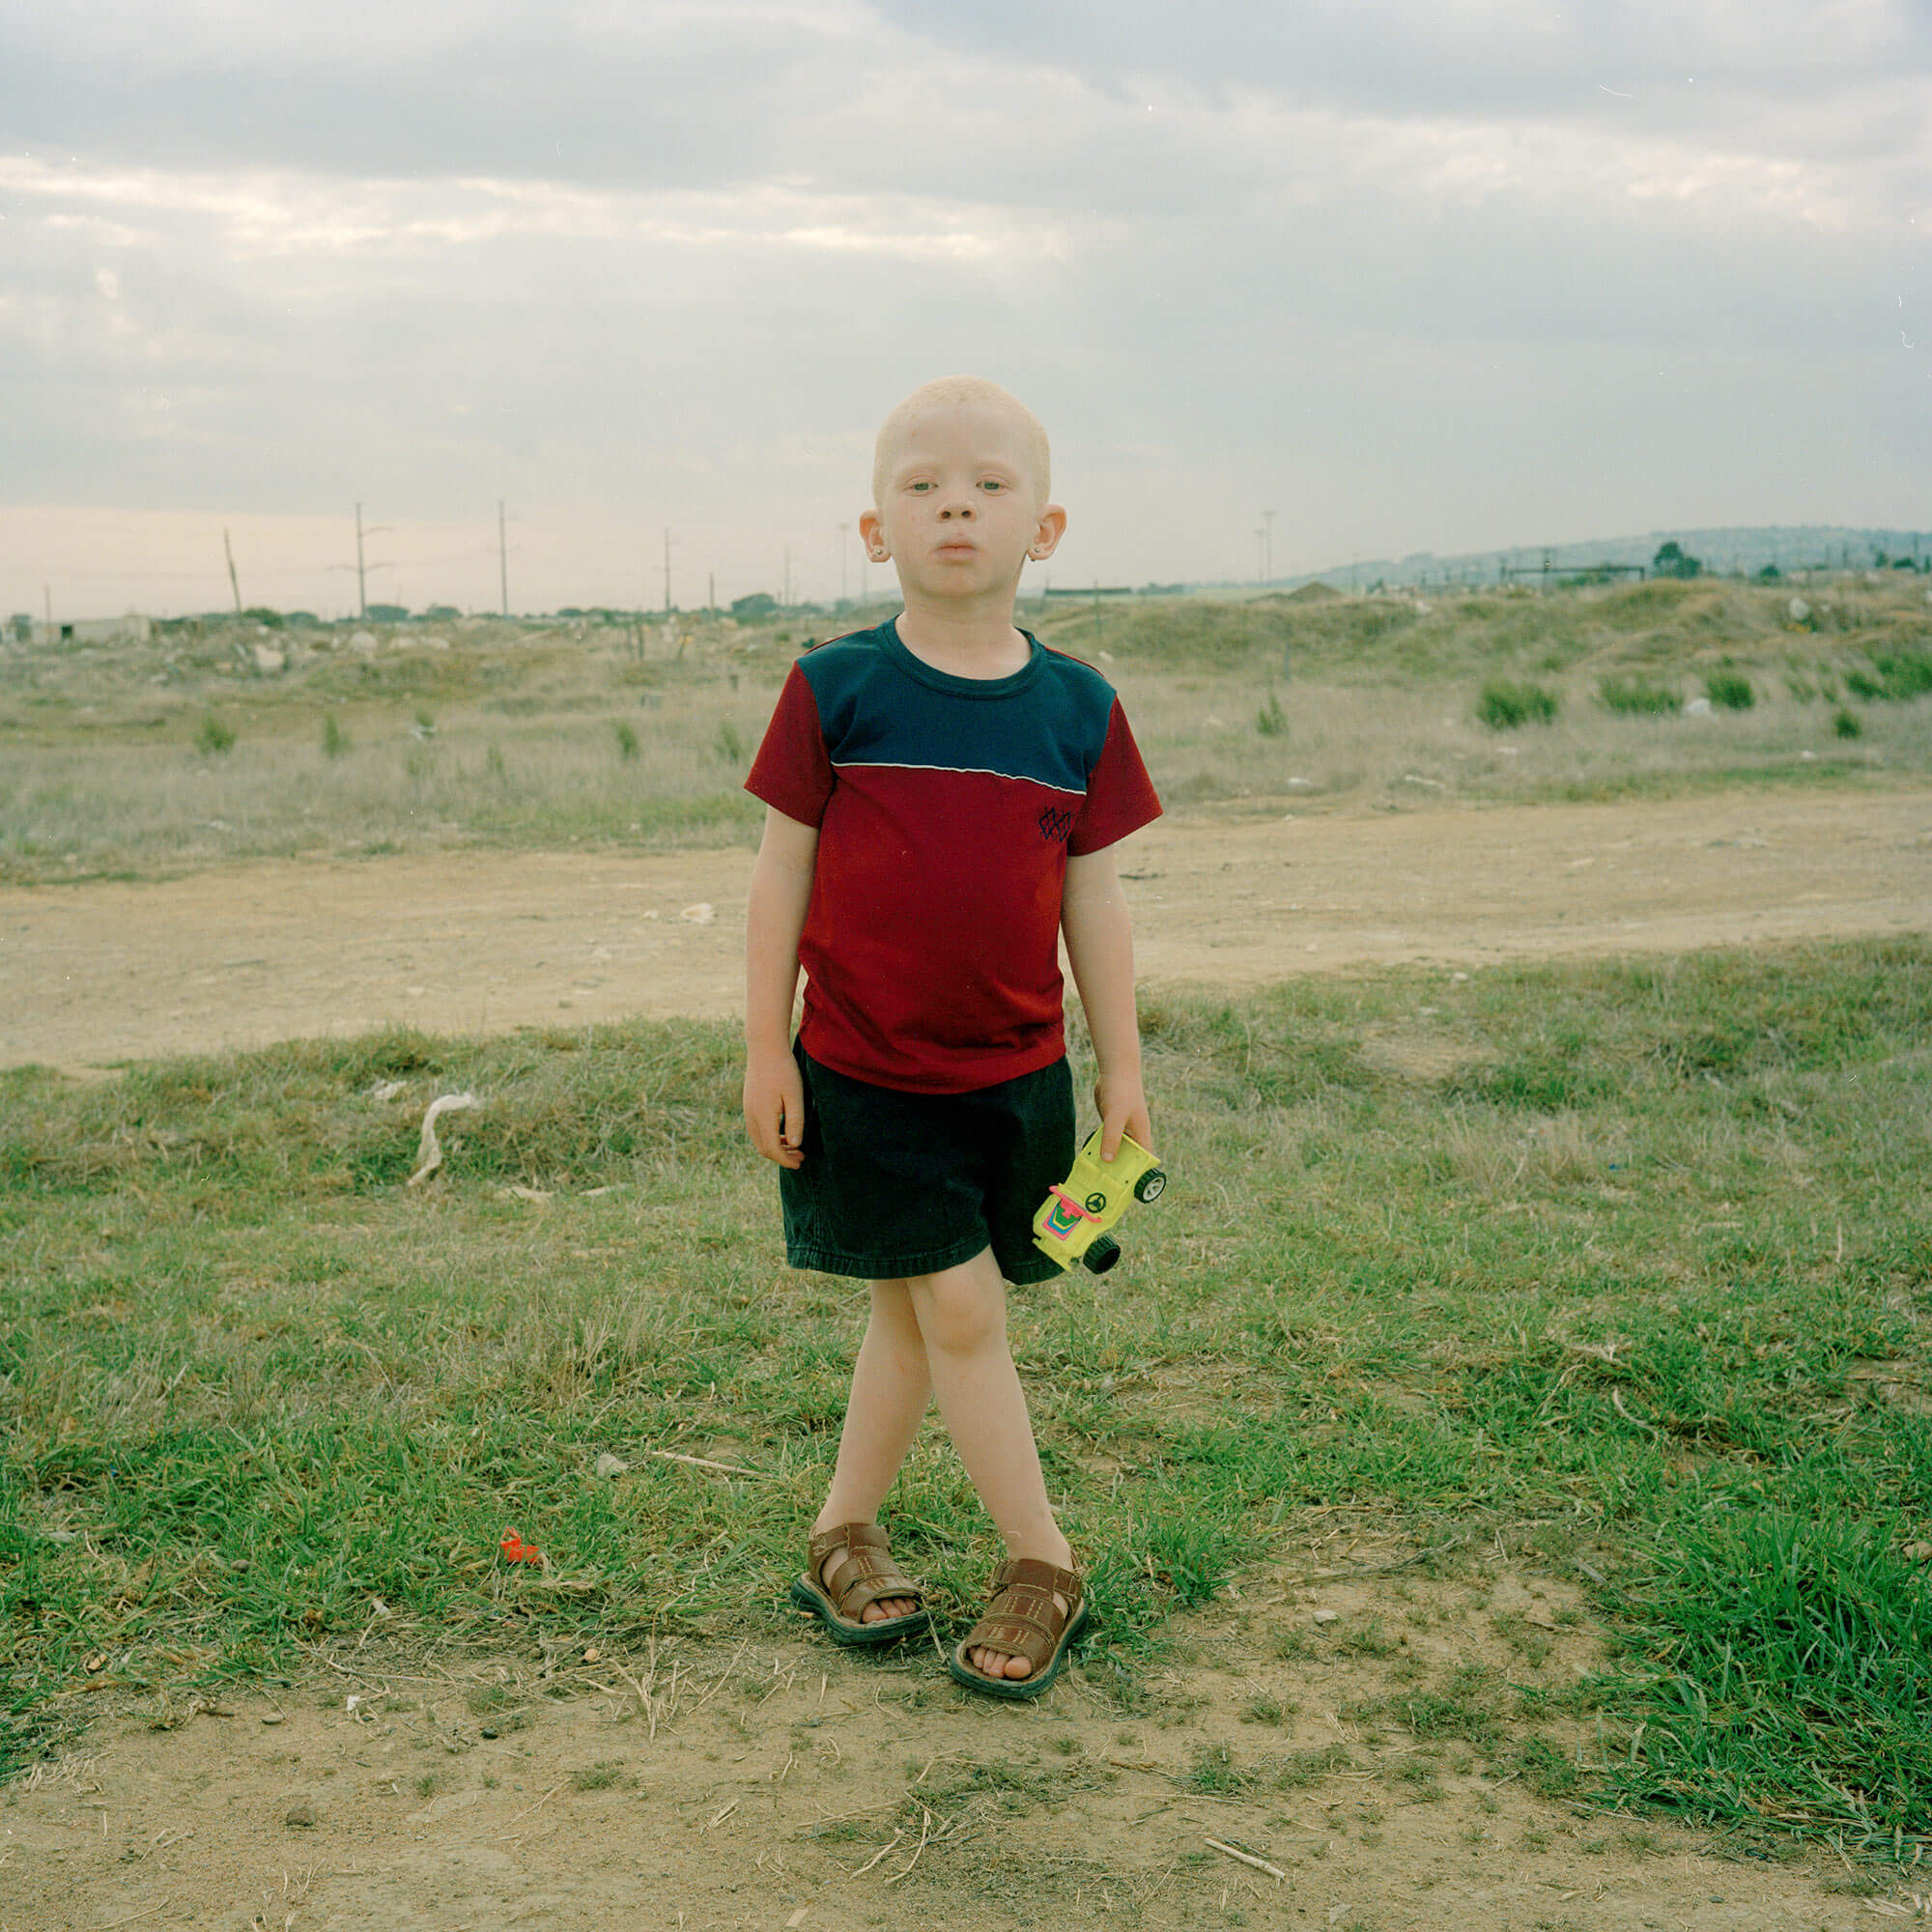 Claudio Rasano SOUTH AFRICA EVERYONE LIVE IN THE SAME PLACE LIKE BEFORE portrait of boy stood in field